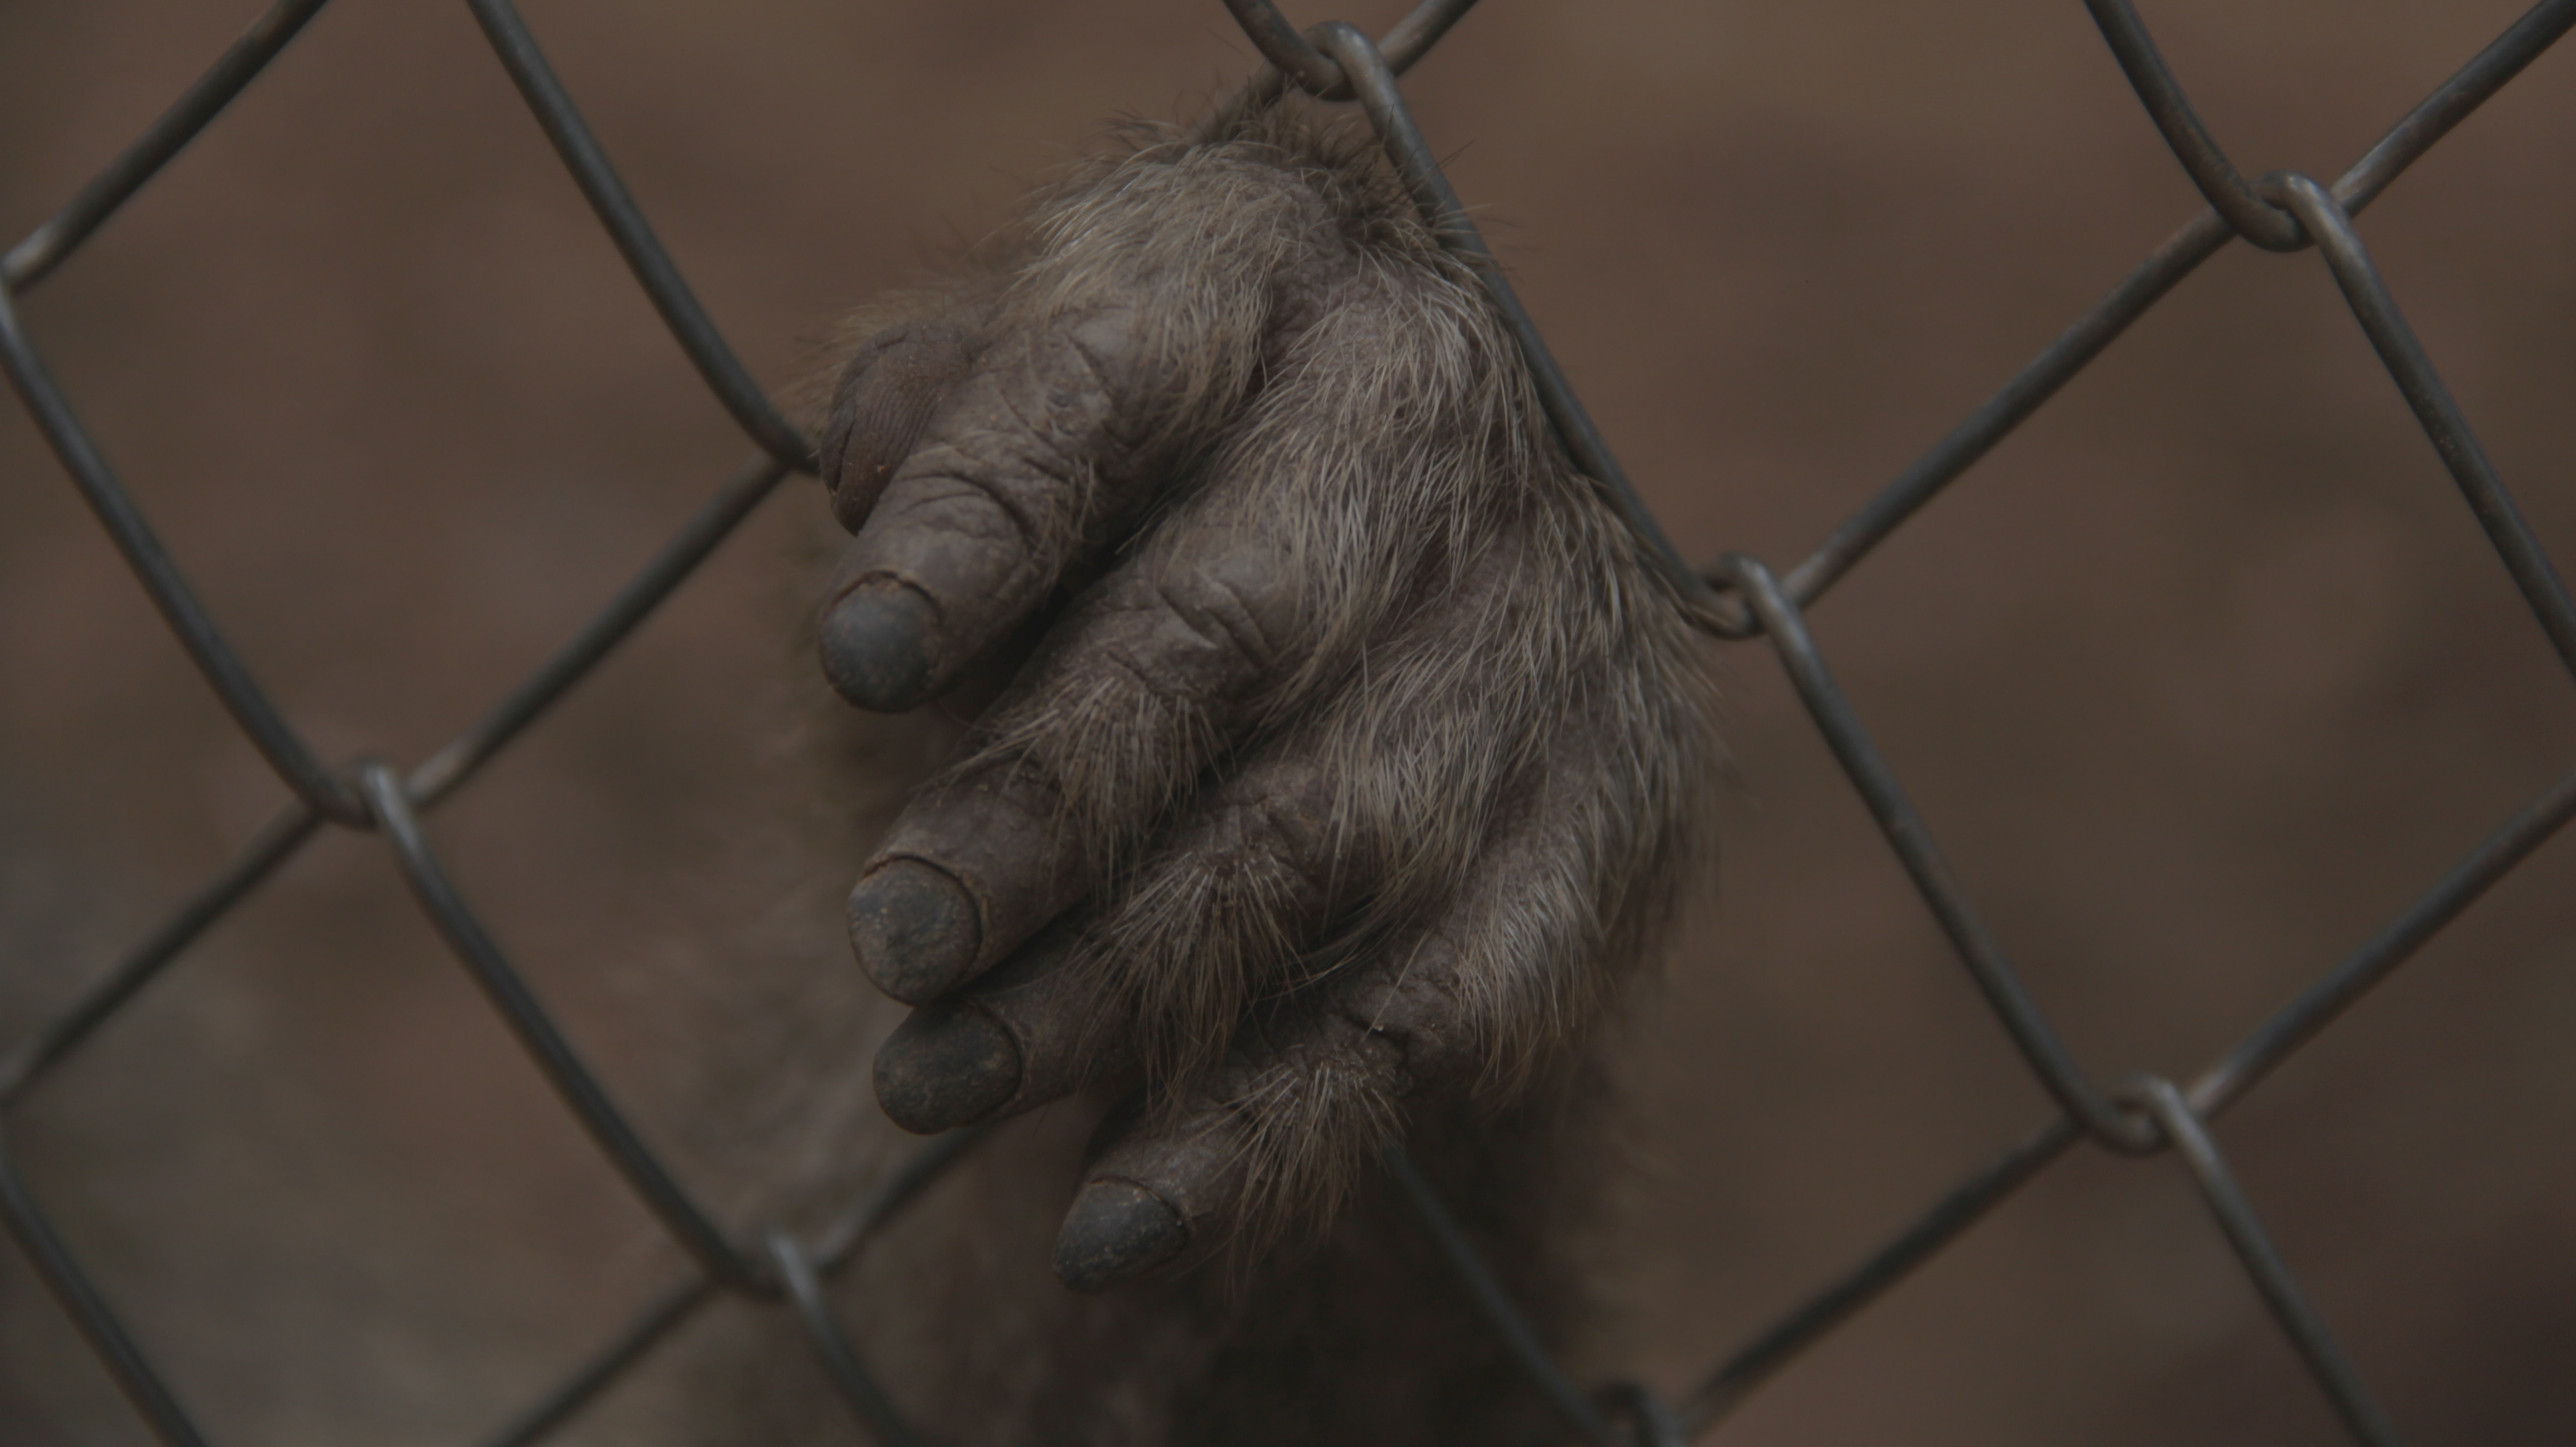 Ape hand holding a wire cage